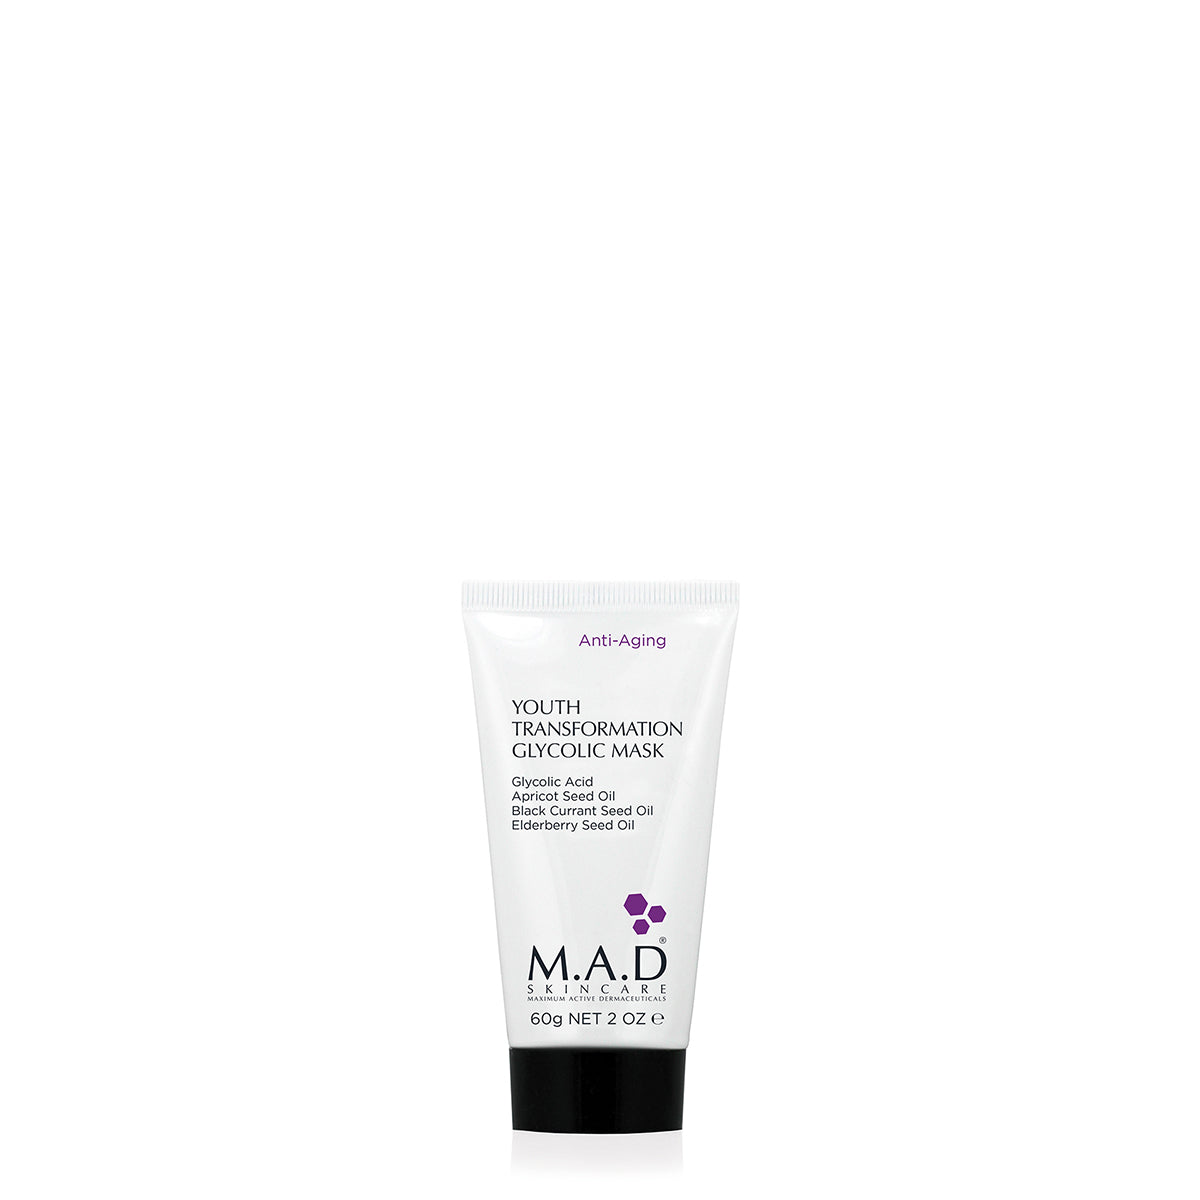 YOUTH TRANSFORMATION GLYCOLIC MASK